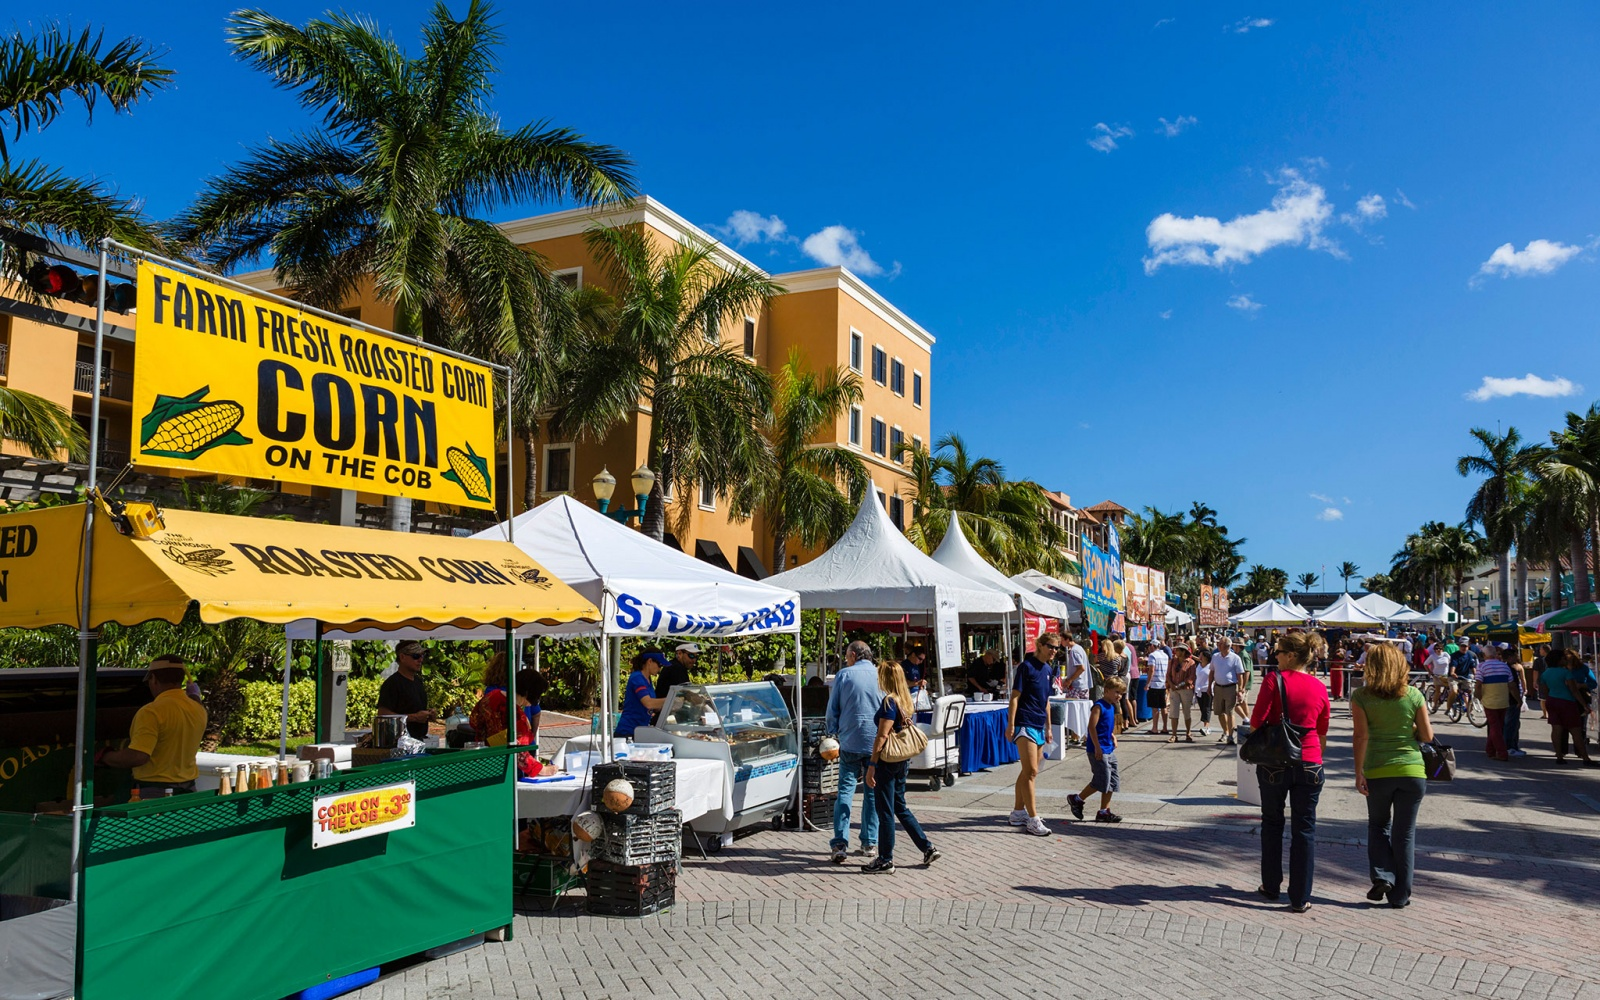 Places To Stay In Delray Beach Fl